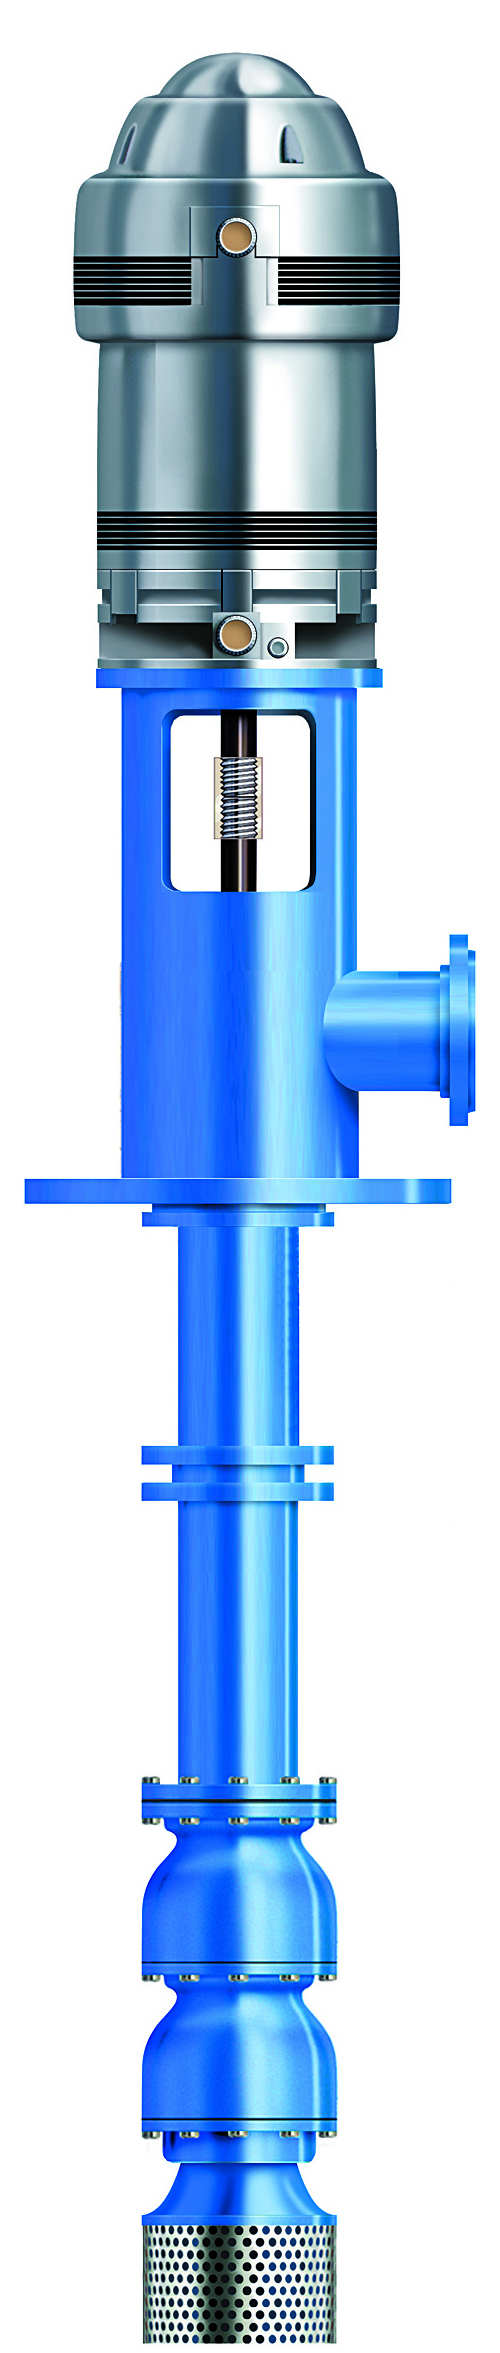 vertical turbine pumps